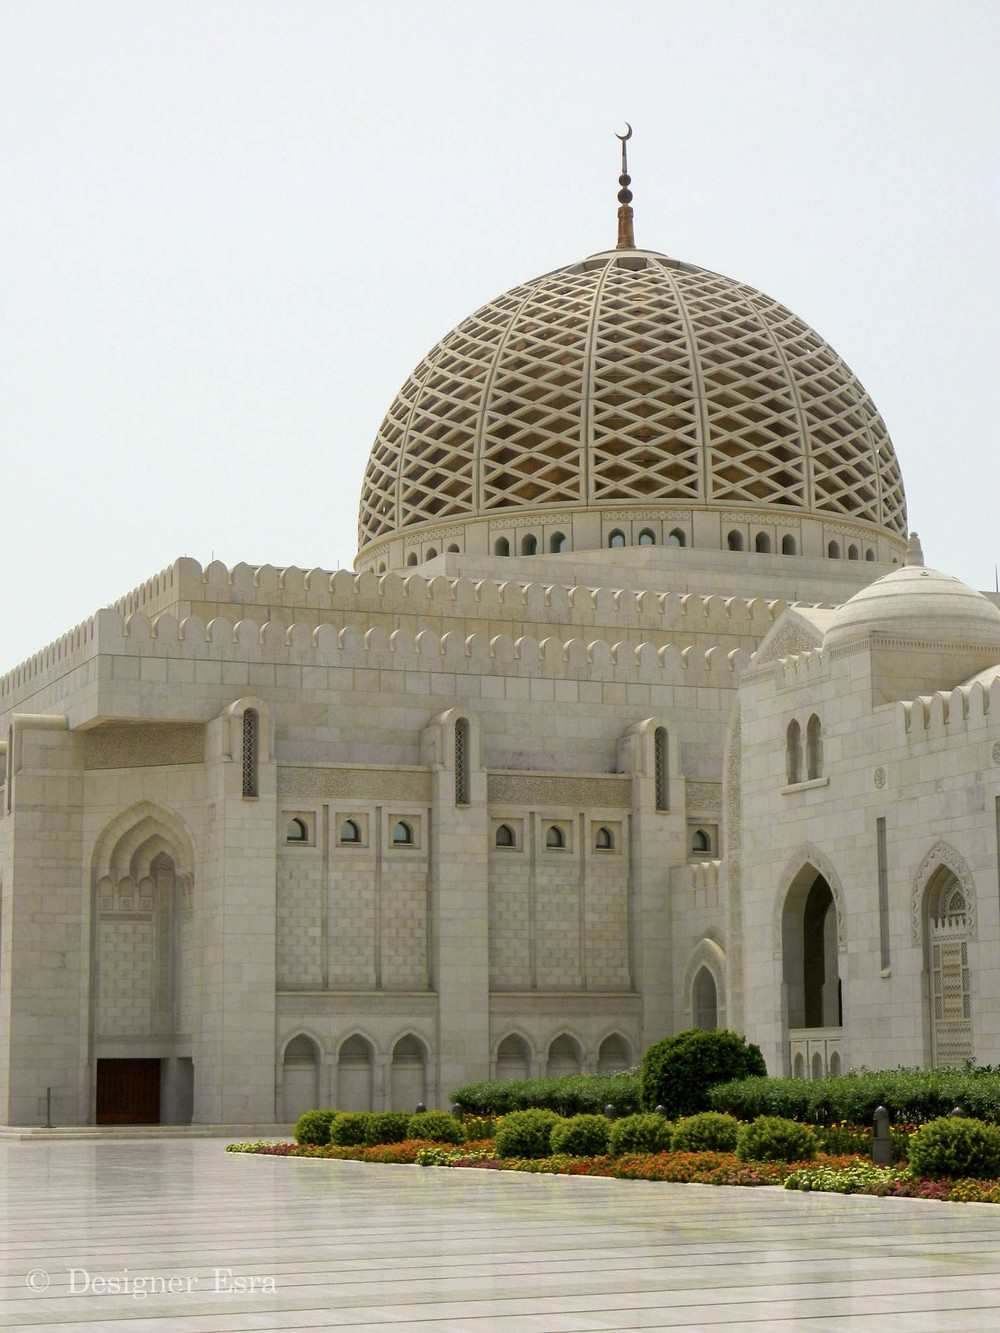 Sultan Qaboos's Grand Mosque